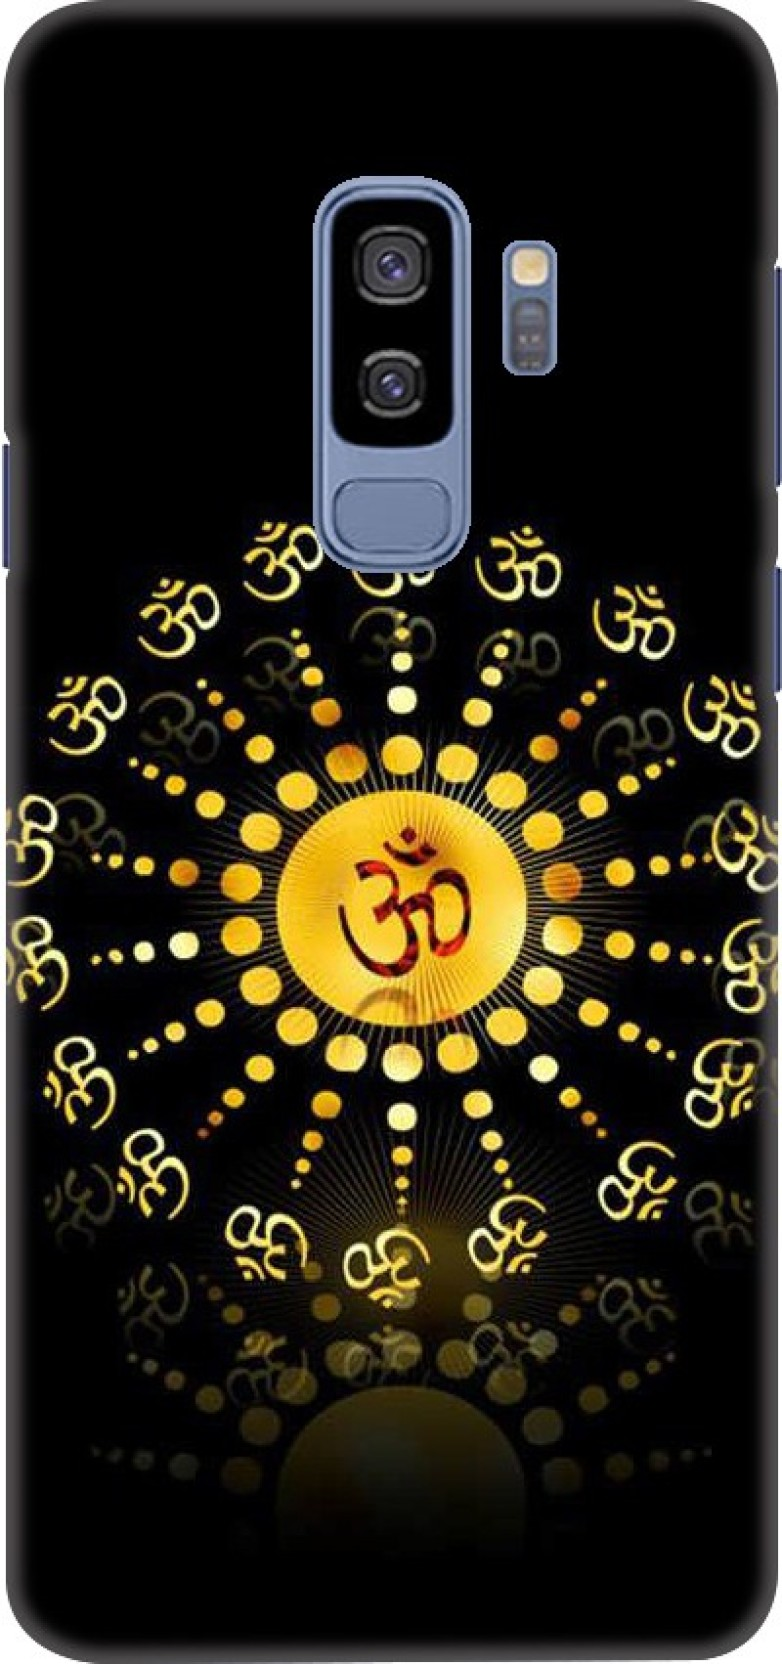 Obokart Back Cover For Samsung Galaxy S9 Plus Samsung Bhakti Mp3 Ringtone 2156660 Hd Wallpaper Backgrounds Download